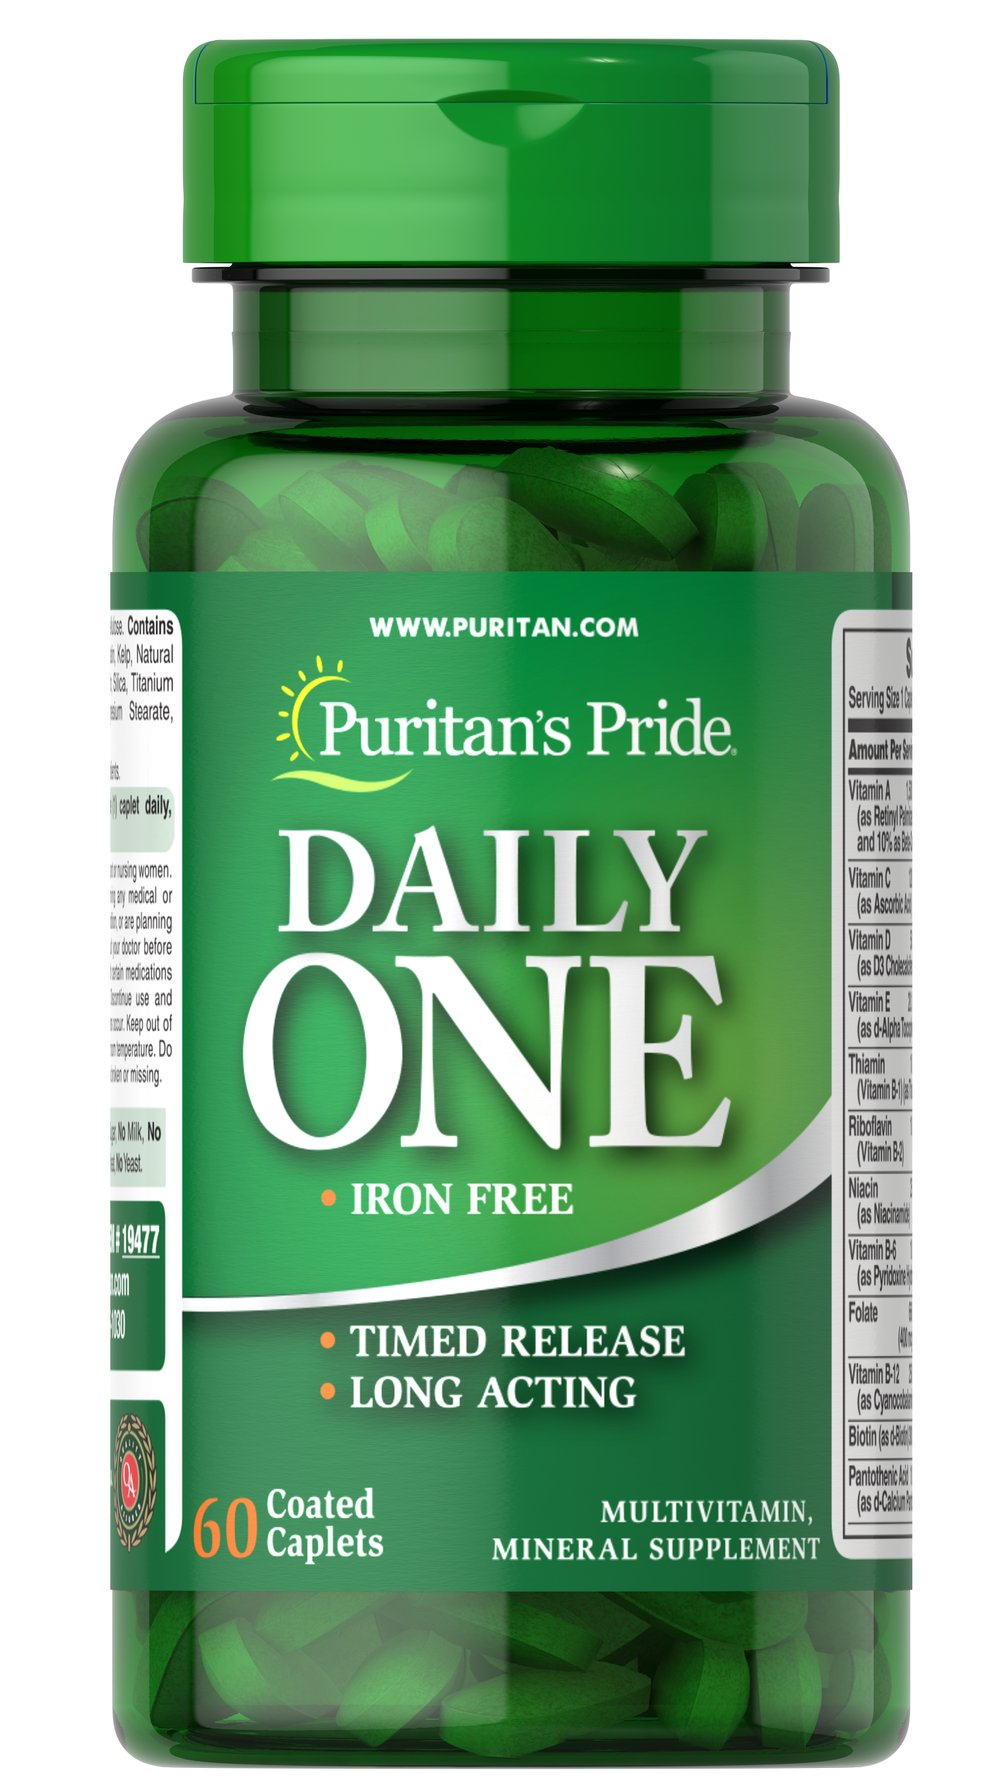 Iron Free Multivitamins Timed Release <p>Provides more than 20 vitamins and minerals for overall health and wellness**</p><p>Iron-Free formula is perfect for those looking to limit their intake of Iron</p><p>A super convenient dose of just one long-acting coated caplet a day</p><p>Our timed release formula supplies prolonged absorption of B-Complex and C vitamins for heart, immune and nervous system health**</p> 60 Caplets